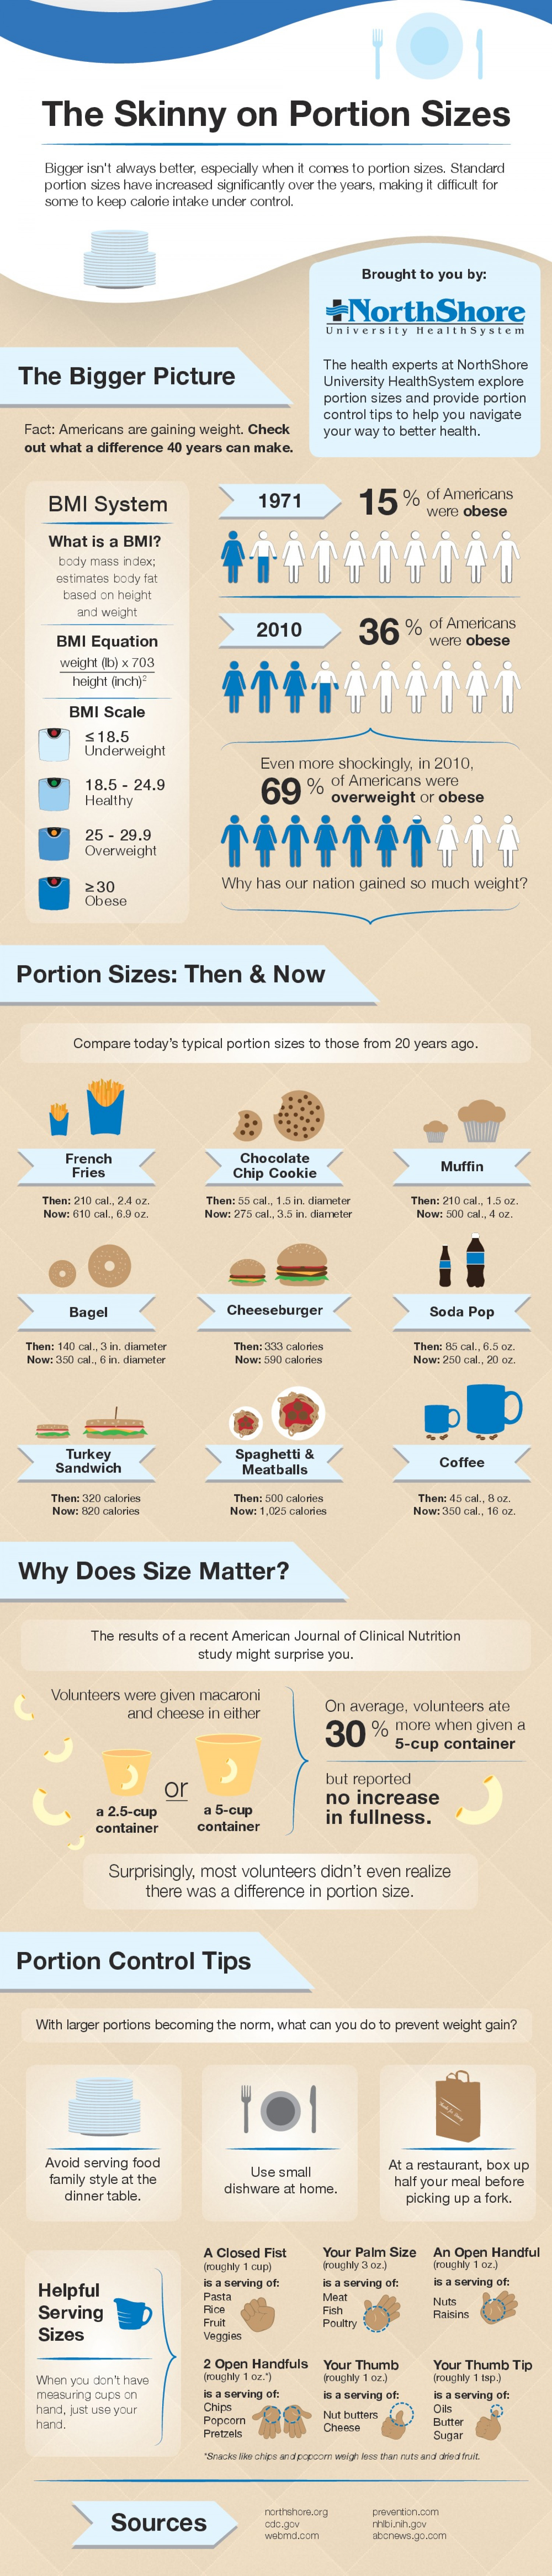 The Skinny on Portion Sizes Infographic